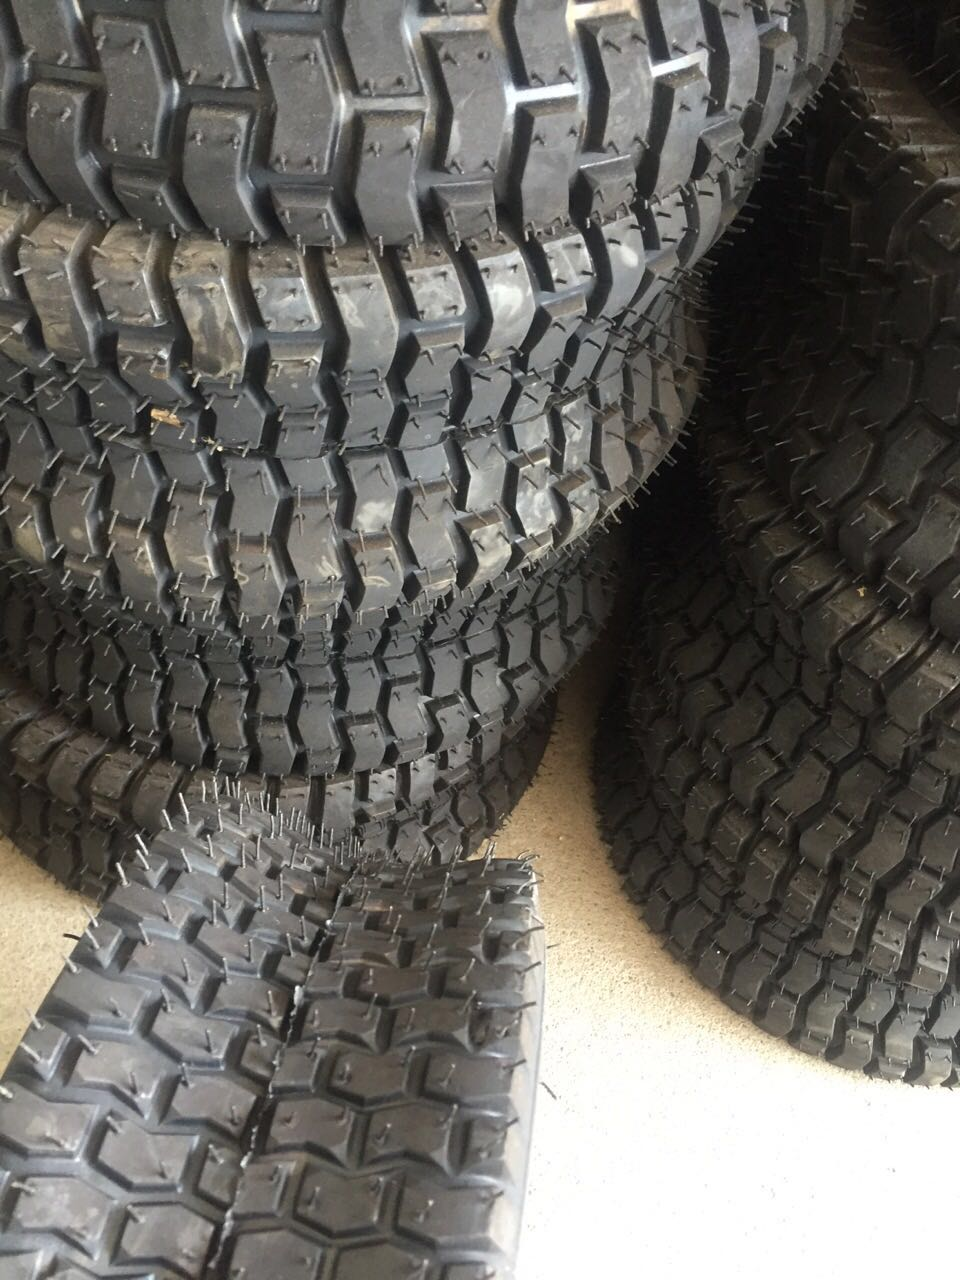 US $31 87 6% OFF|Tubeless Tire 13x6 50 6 for ATV QUAD Golf Buggy Mower Go  kart Lawnmowers-in Scooter Parts & Accessories from Sports & Entertainment